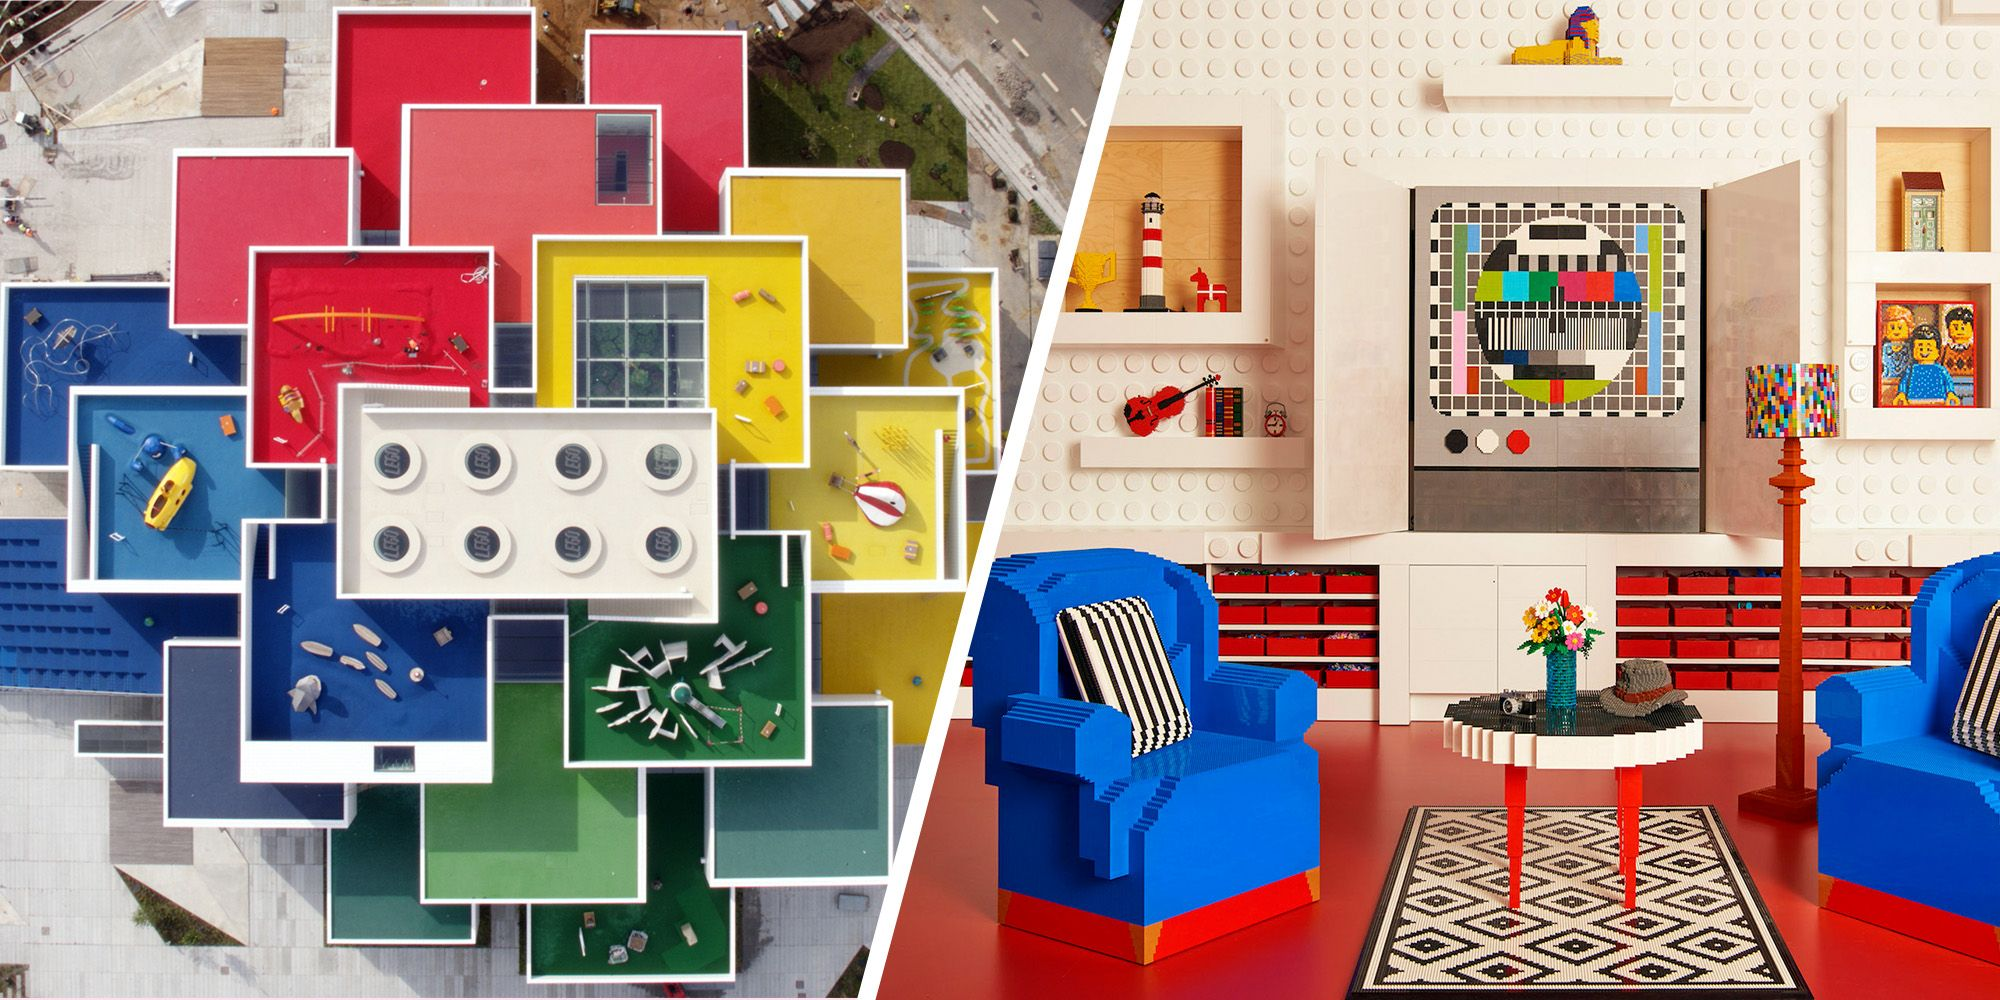 Airbnb Offers Free Night At Bjarke Ingels-Designed LEGO House To One Lucky Winner